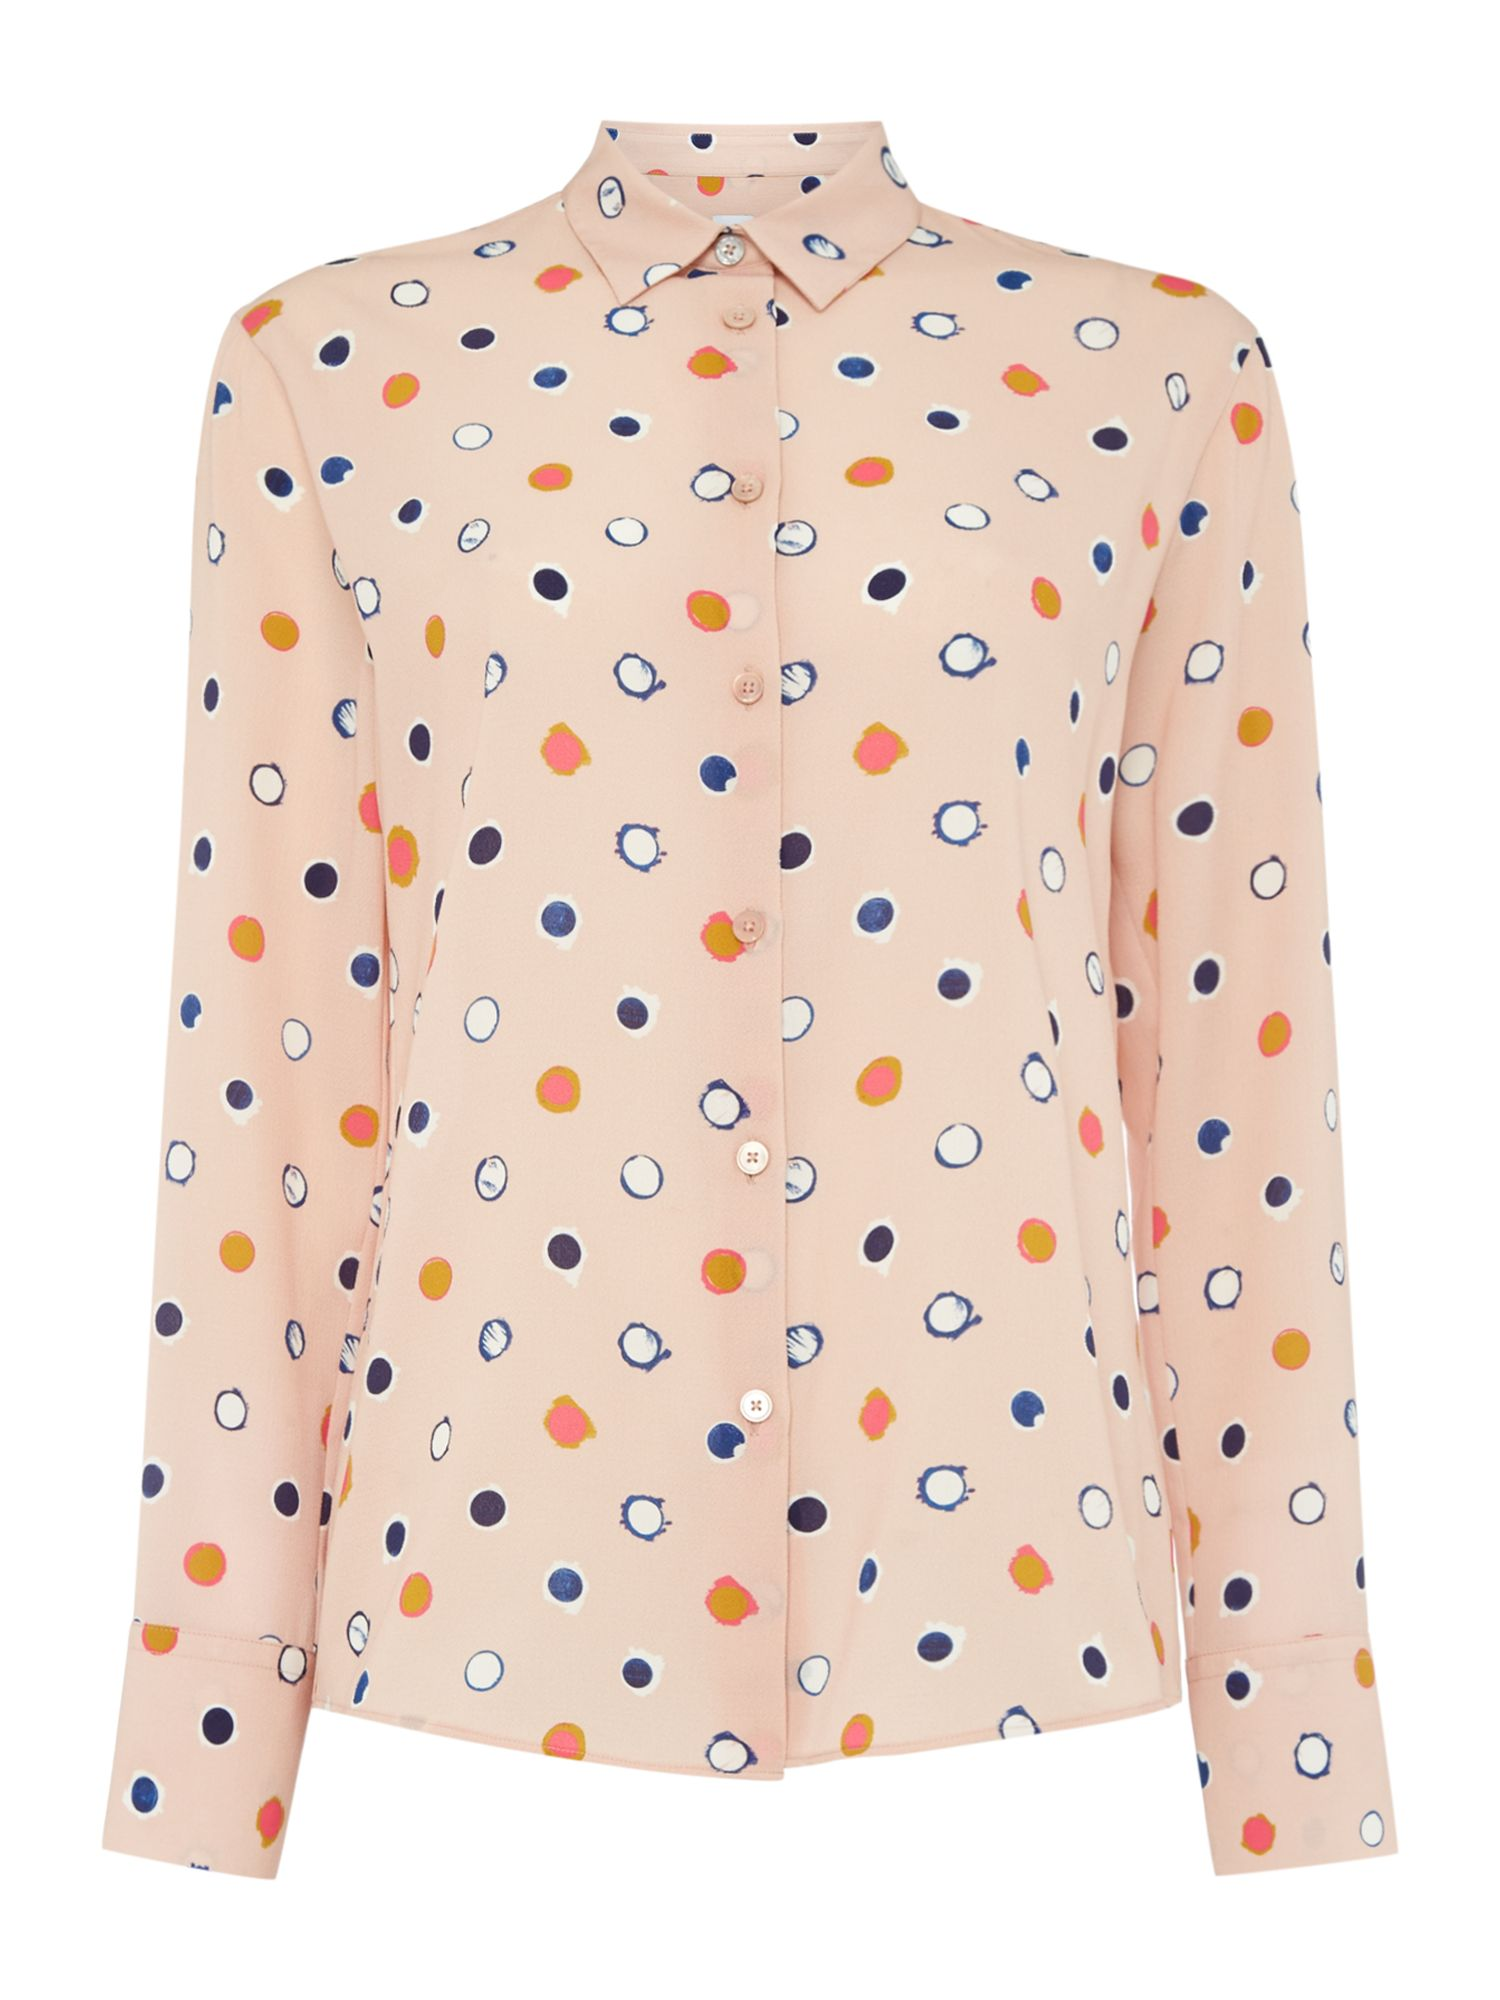 PS By Paul Smith Pink shirt with spot print, Multi-Coloured